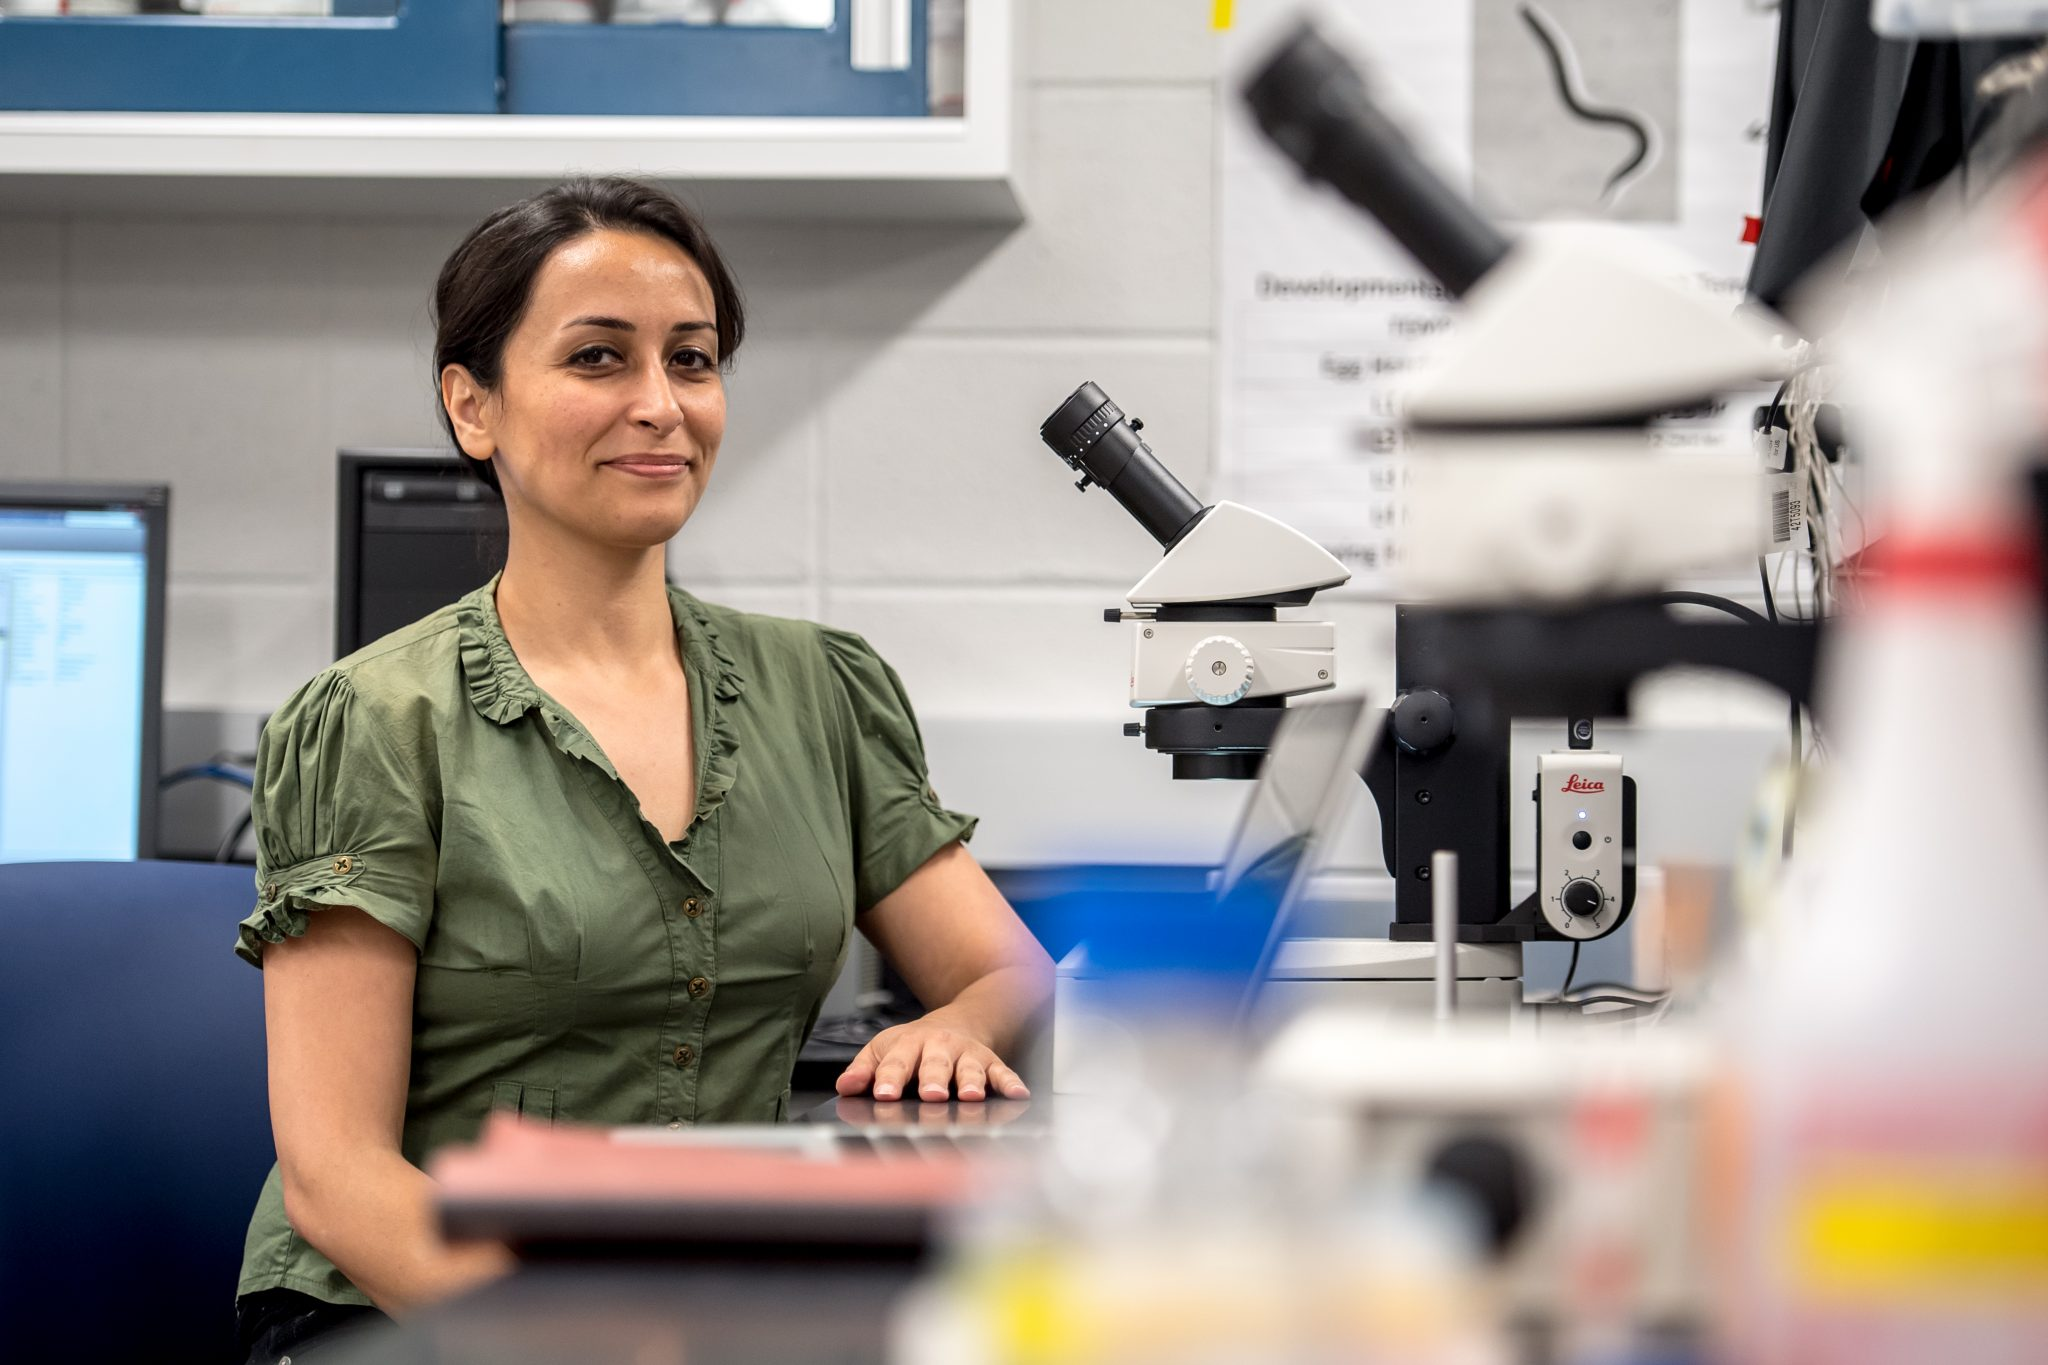 Niknaz Riazati is smiling at a lab bench behind two microscopes. She is wearing a green blouse and has her hair up.